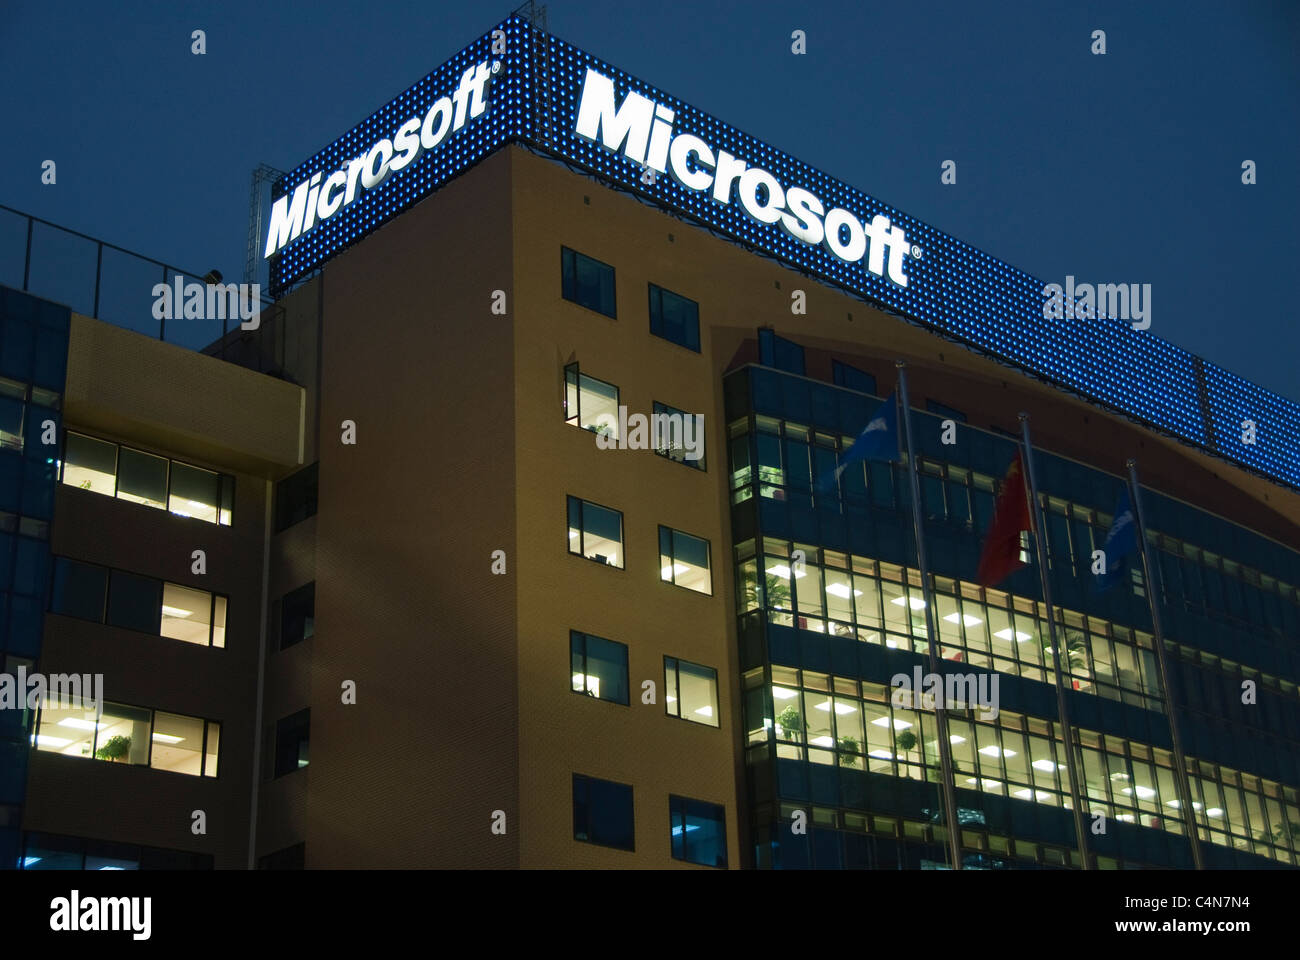 beijing china microsoft corporate office building lit up at night